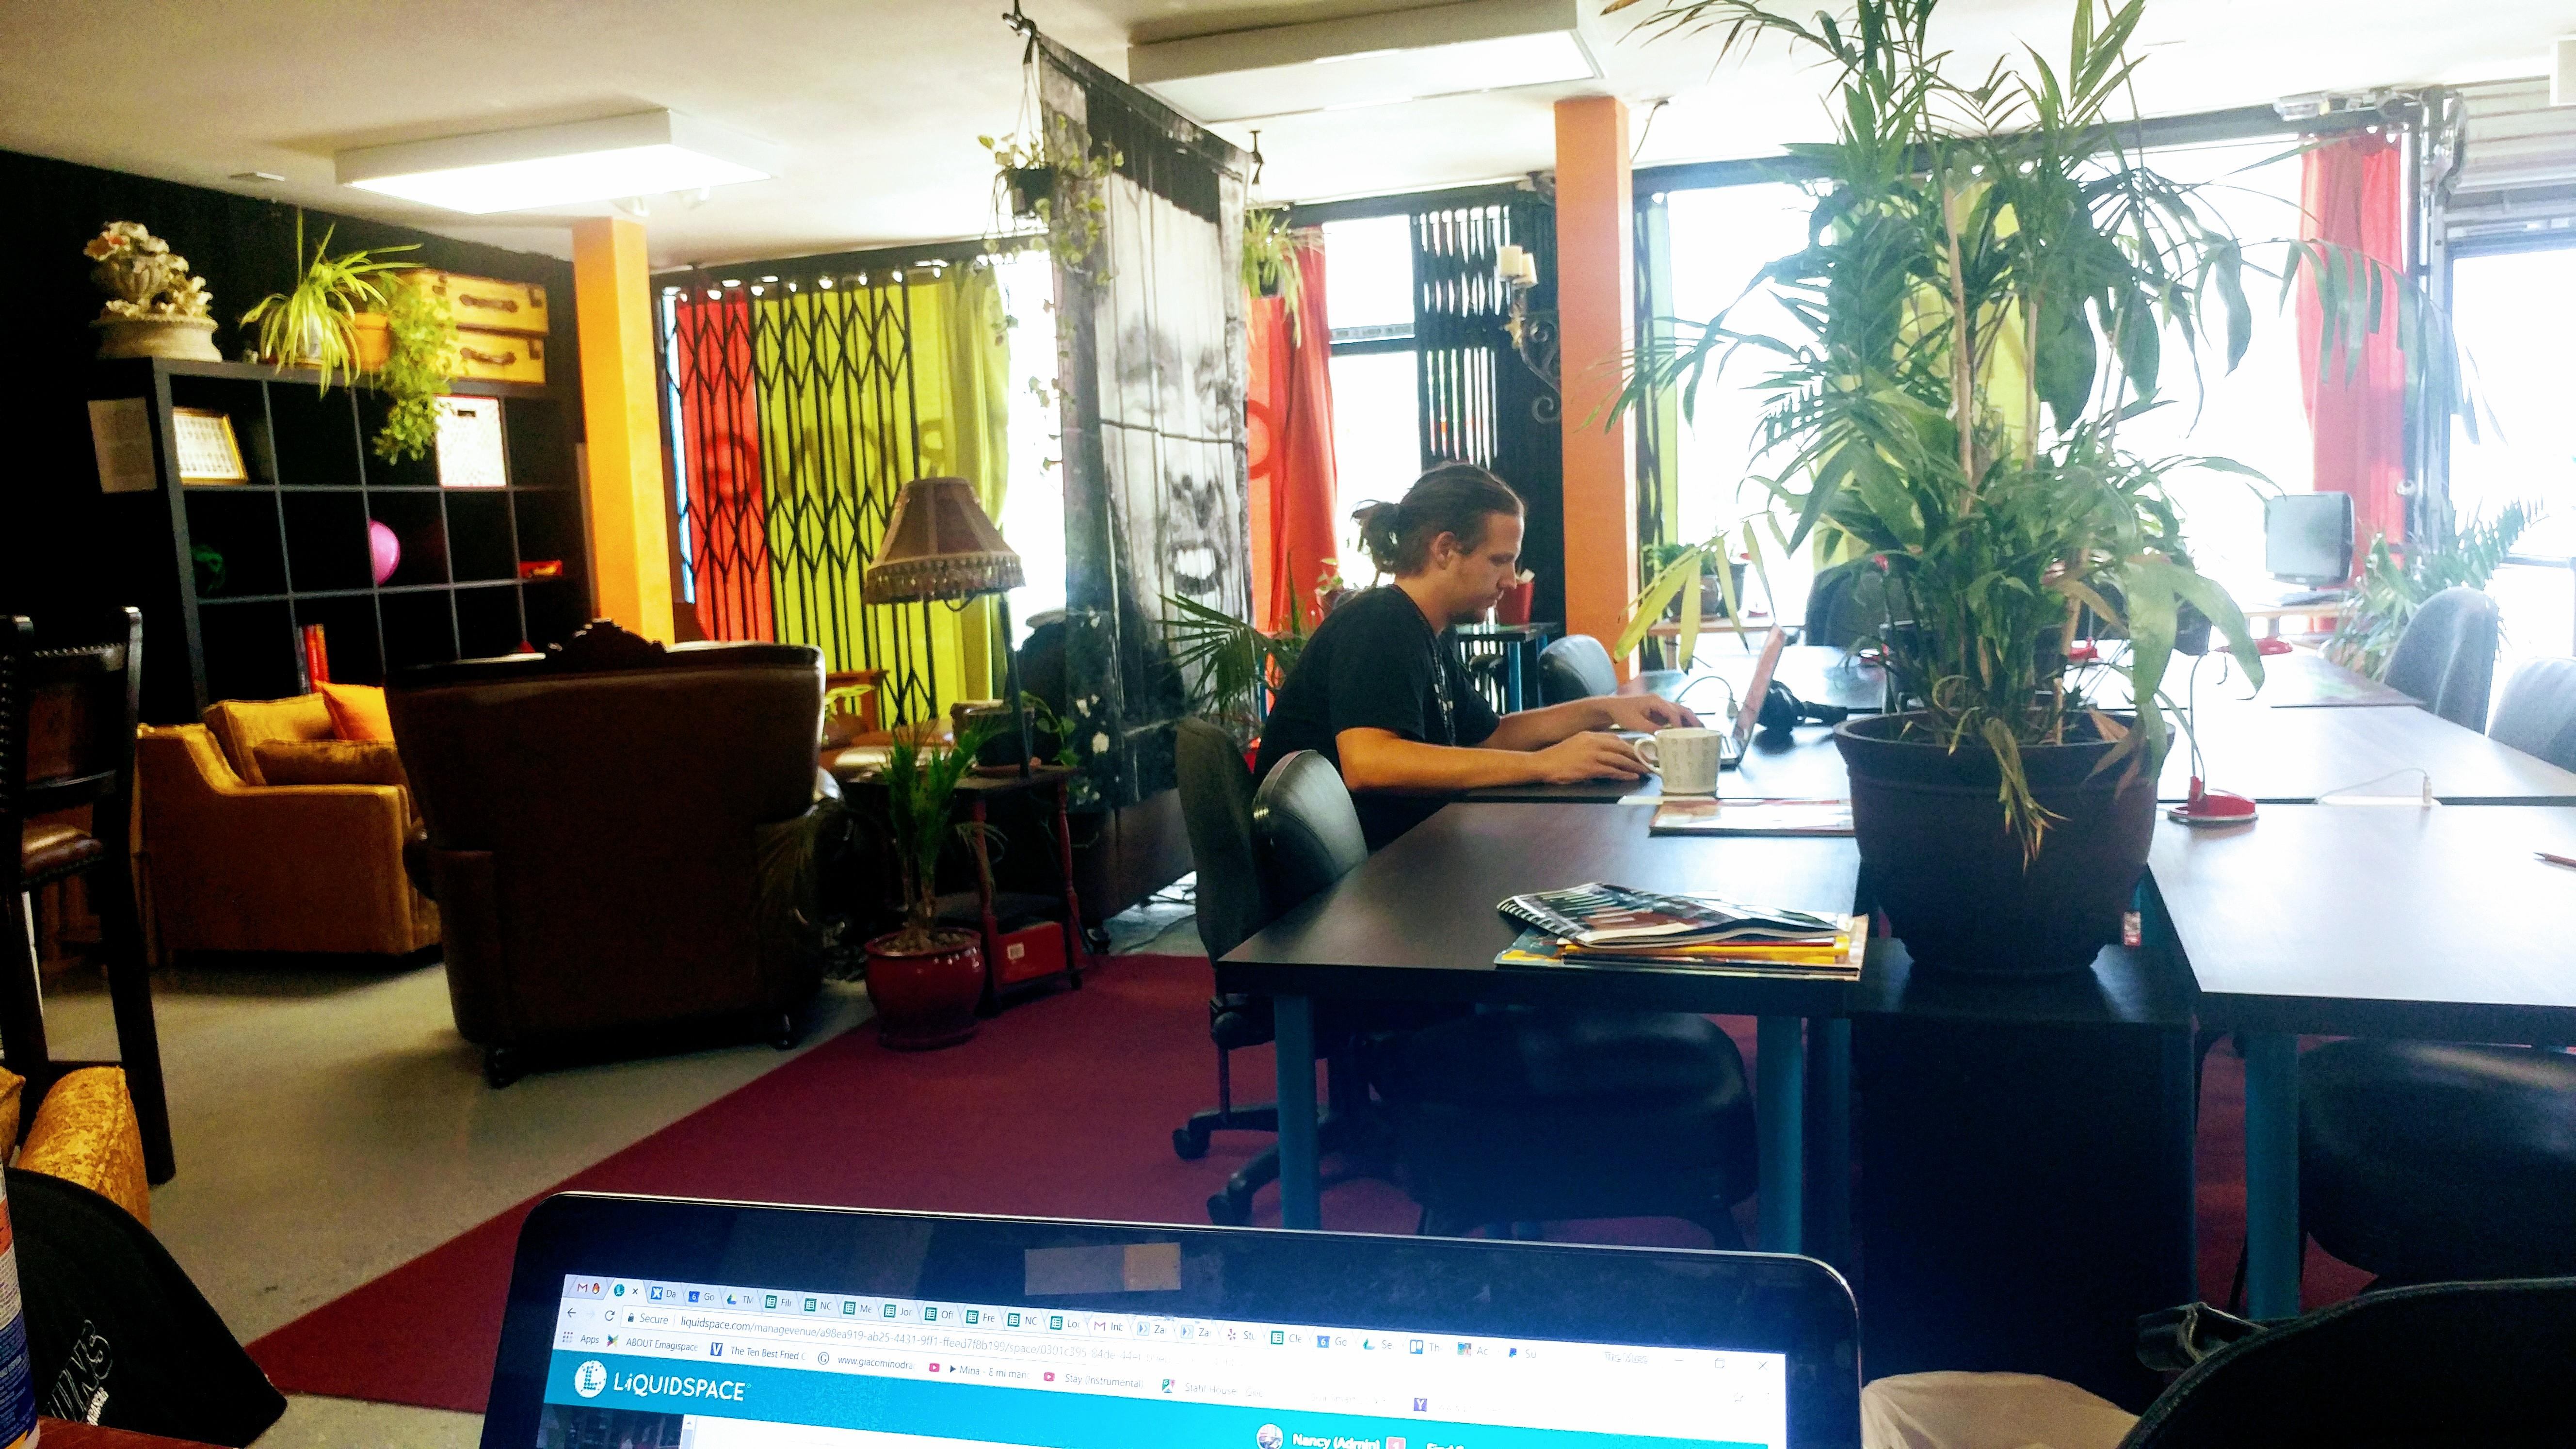 The Muse Rooms NOHO - The Muse Rooms NOHO Open Desk